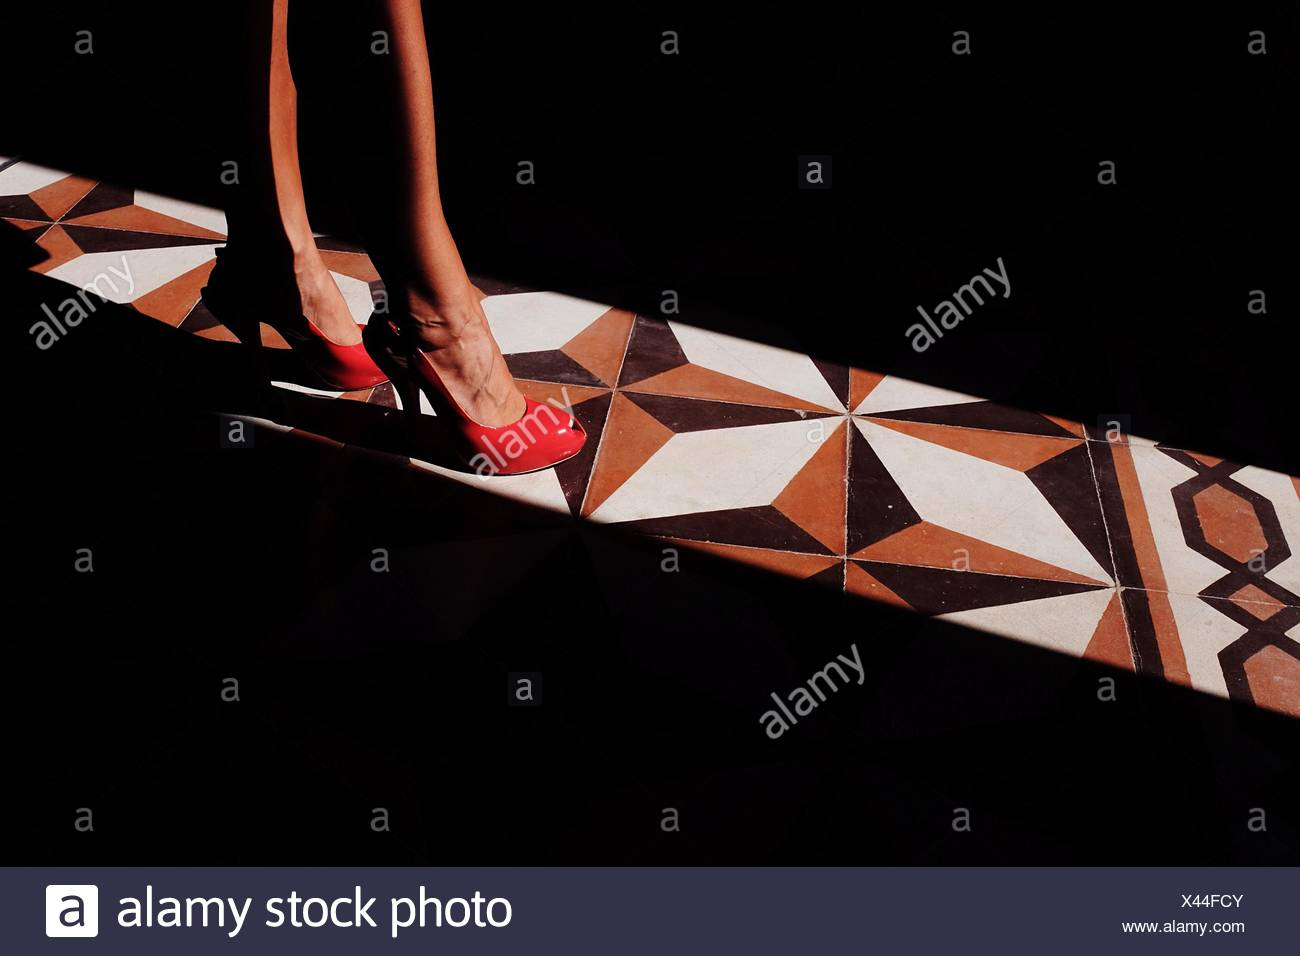 Low Section Of Woman Standing On Sunlight Over Tiled Floor - Stock Image